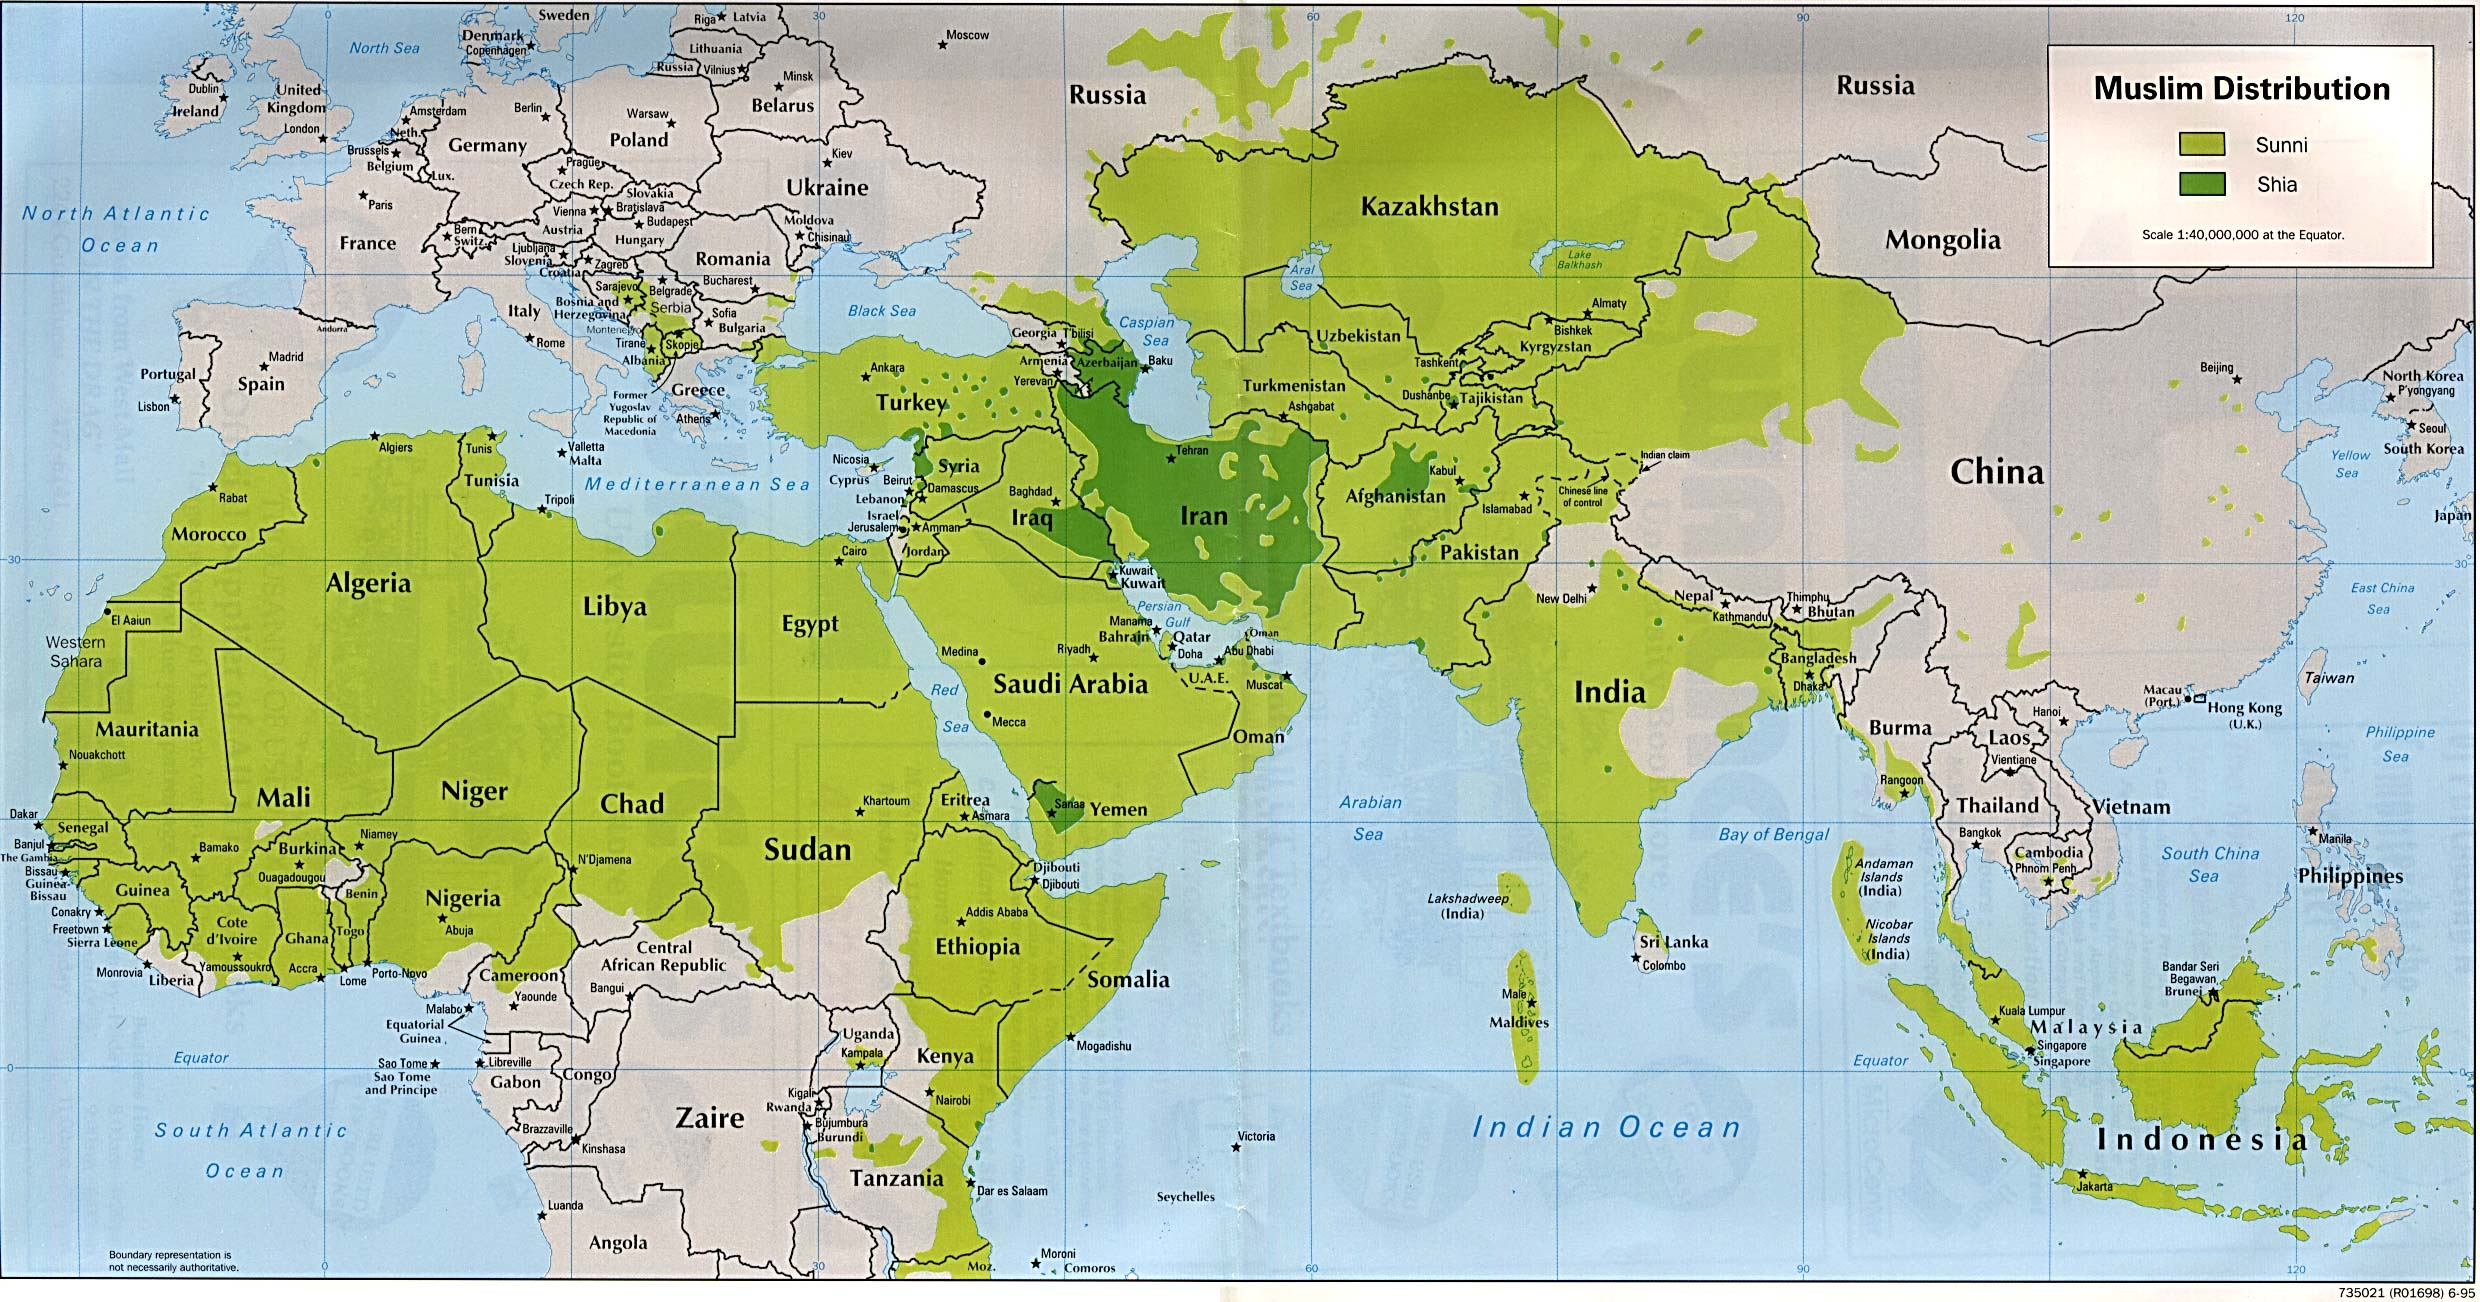 Sunni and Shi'ite Muslims in the World 1995